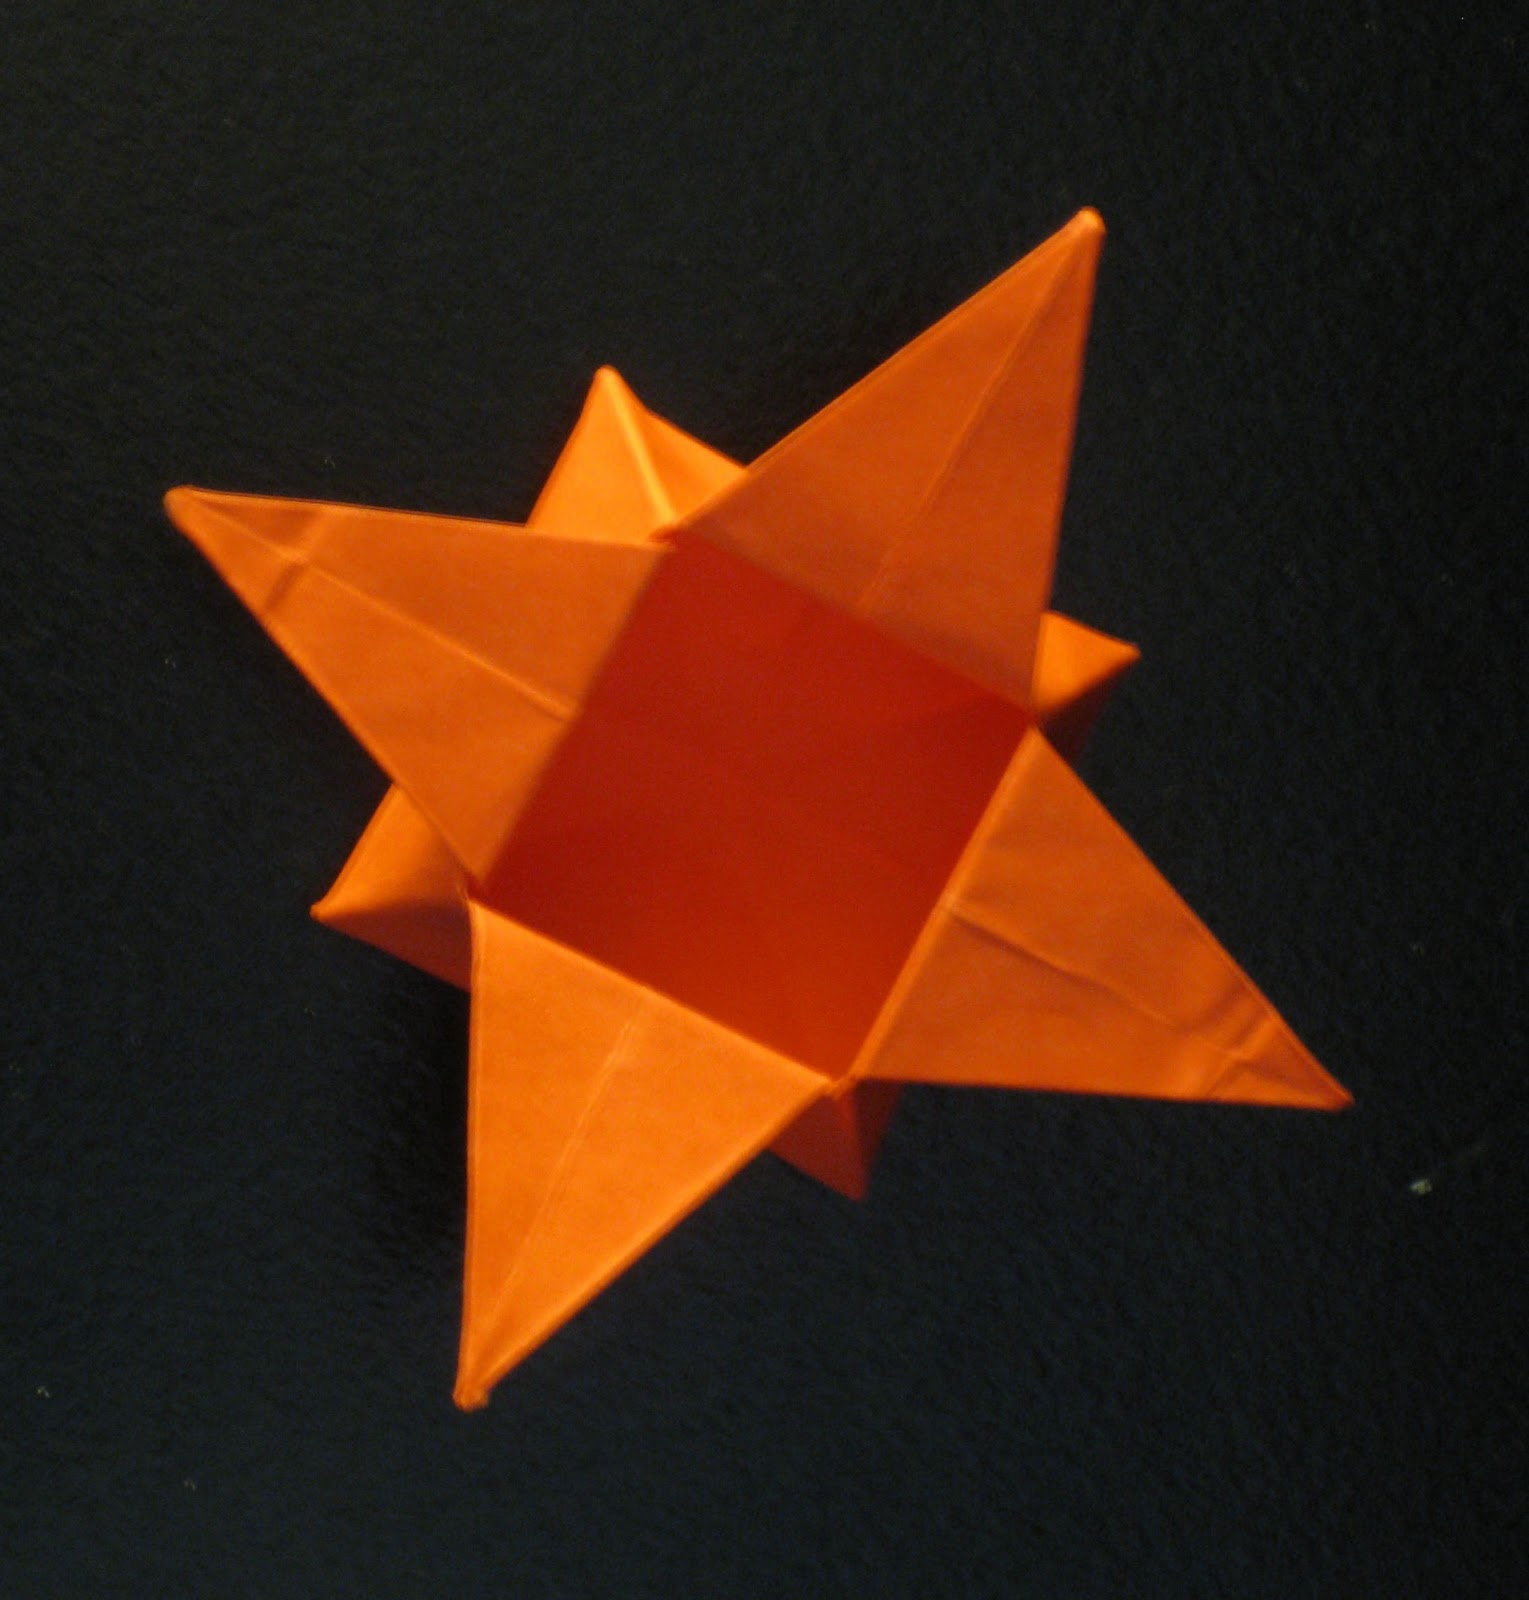 365 days of stargazing 102 origami star box